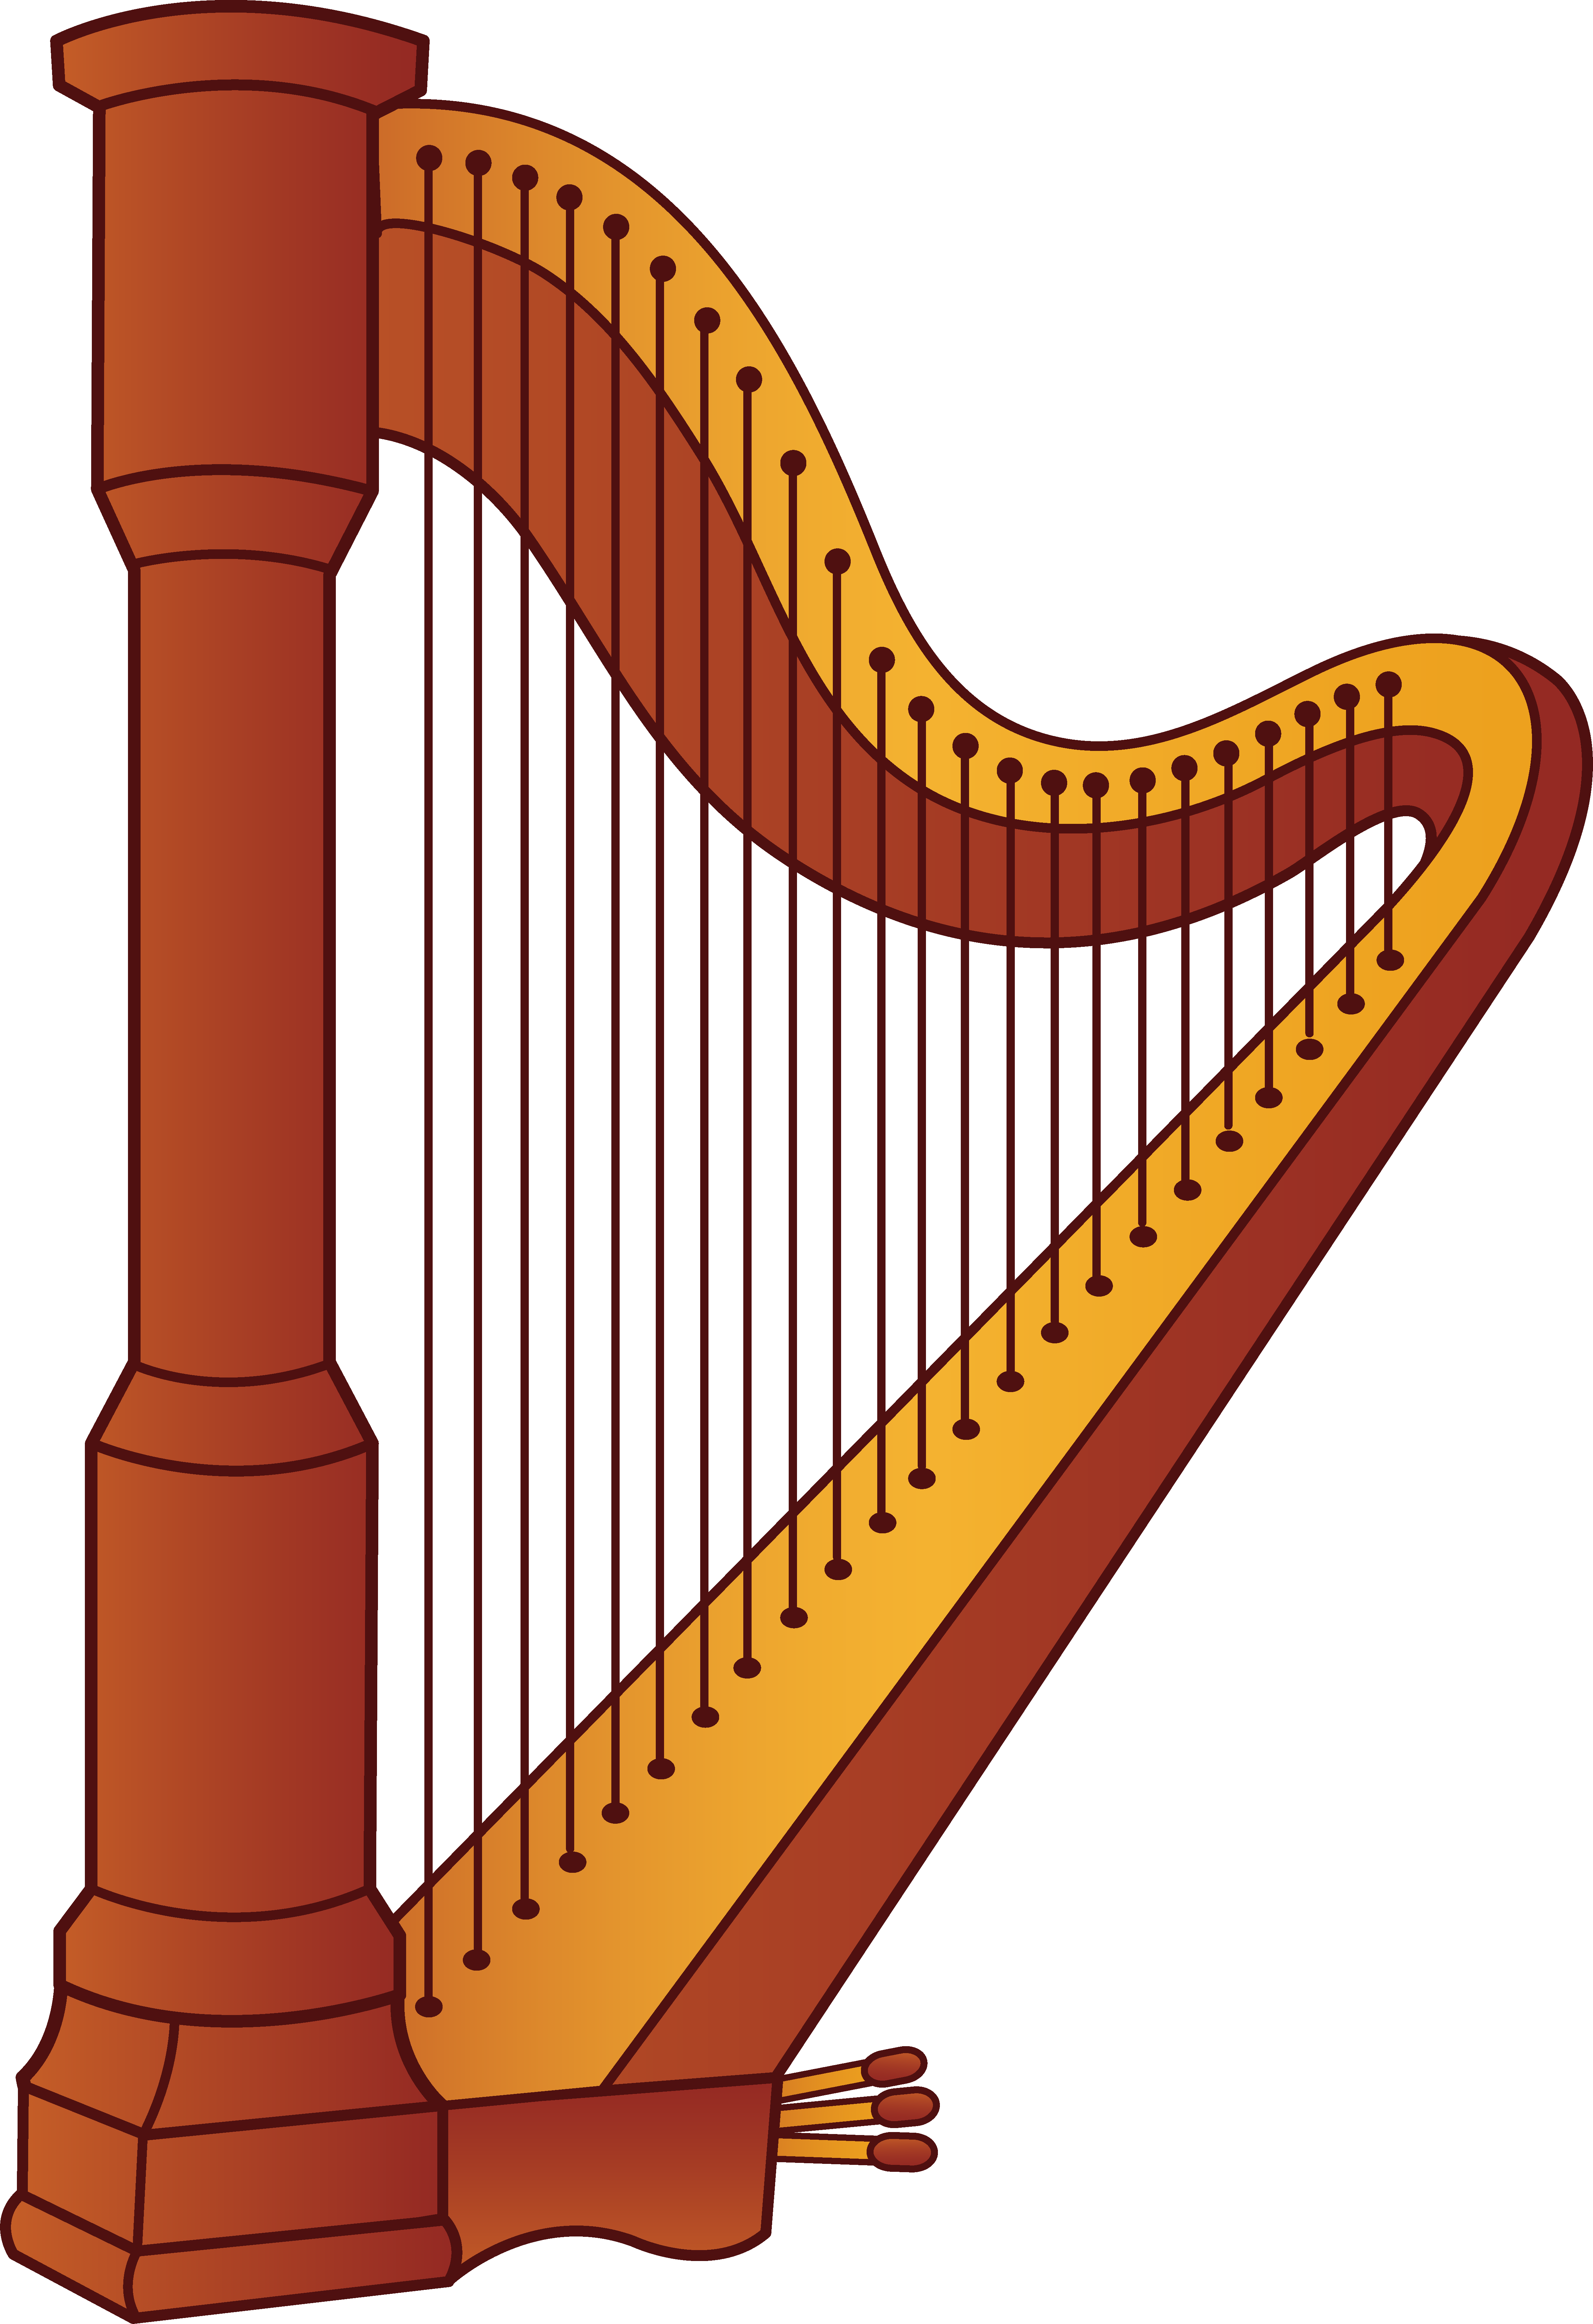 Classroom vector music. Harp musical instrument let